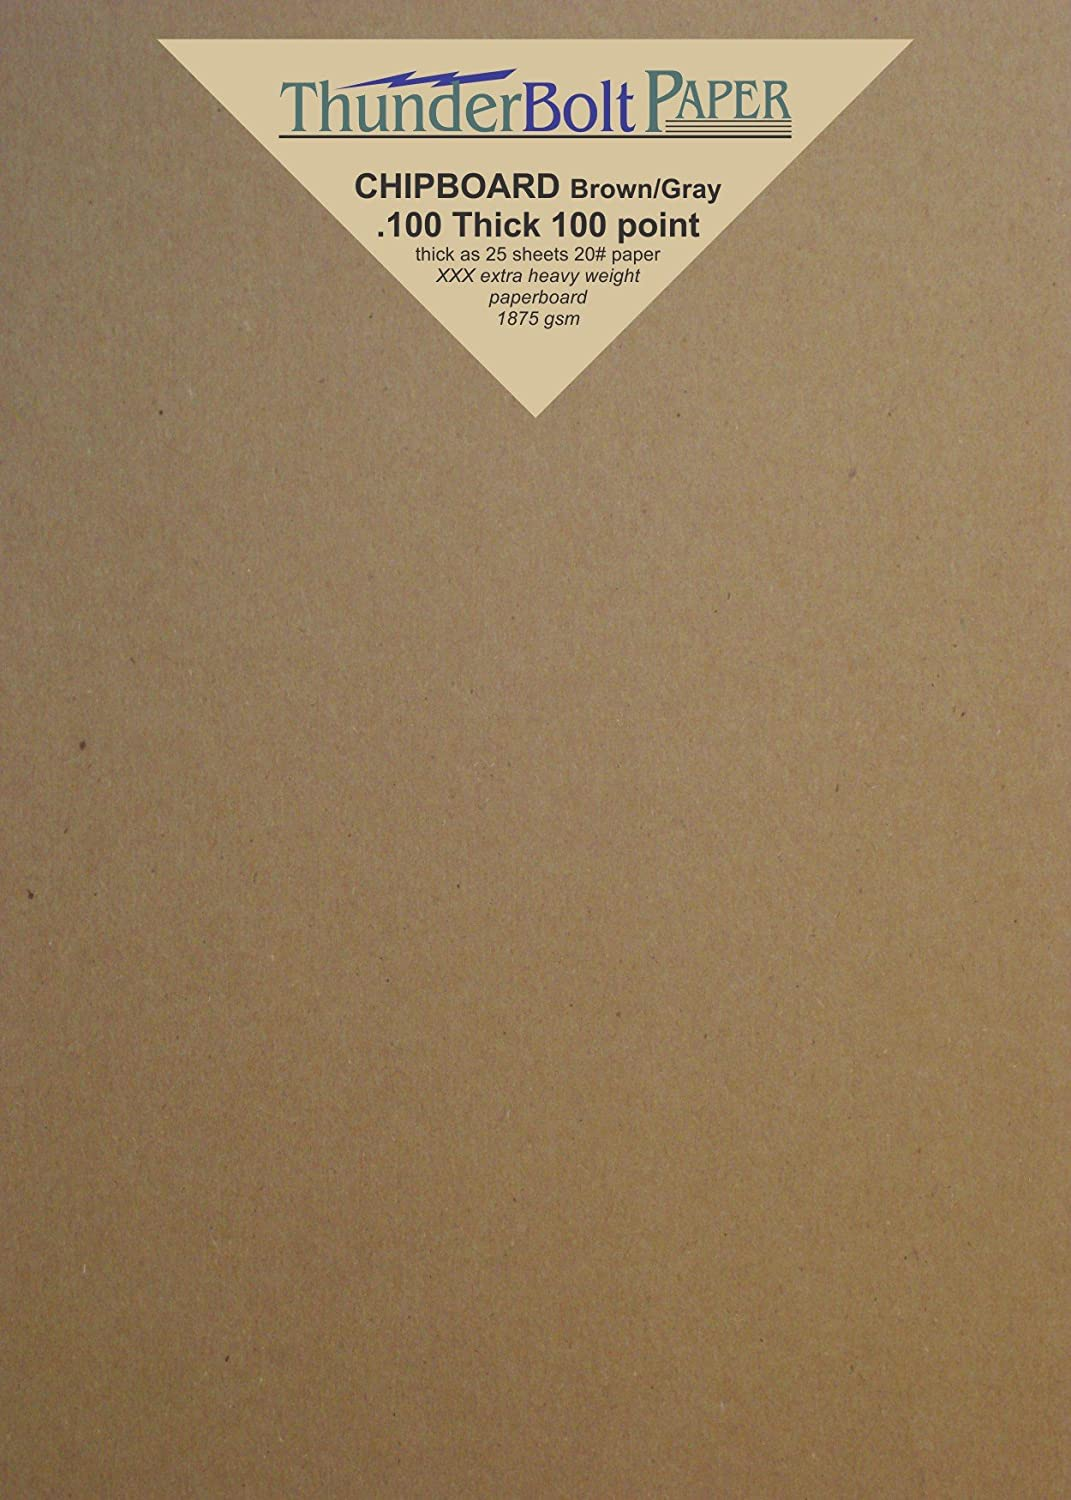 10 Sheets Brown Chipboard 100 Point Extra Thick 5 X 7 Inches Photo & Card Size .100 Caliper XXX Heavy Cardboard as Thick as 25 Sheets 20# Paper TBP